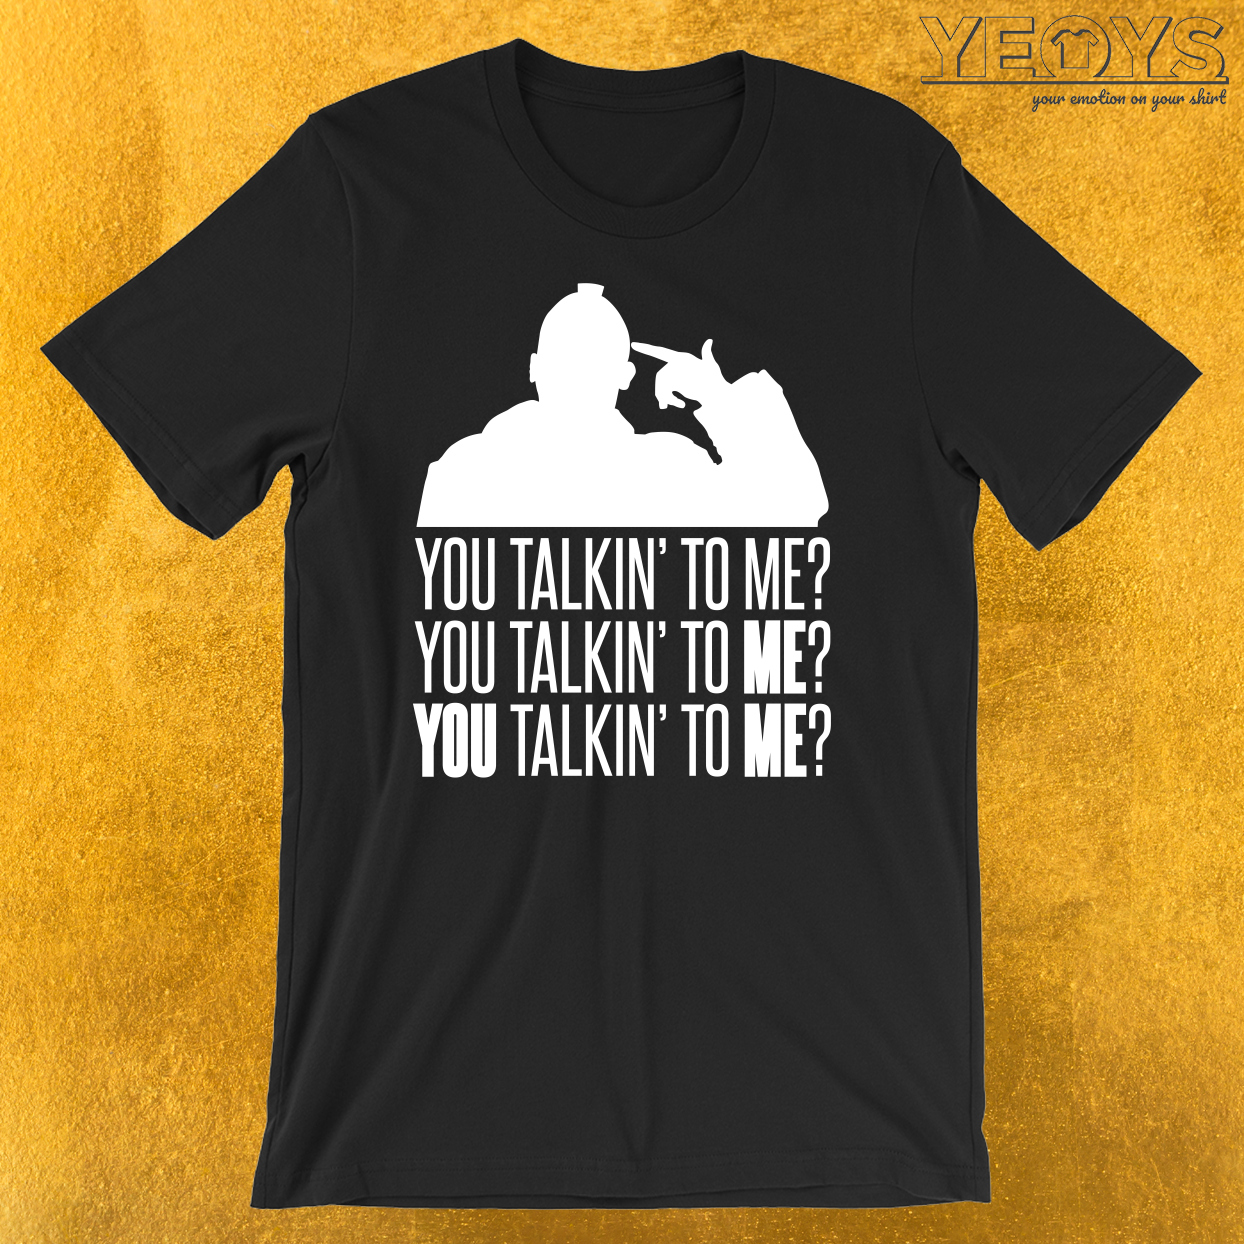 Taxi Driver You Talkin' To Me 3 T-Shirt